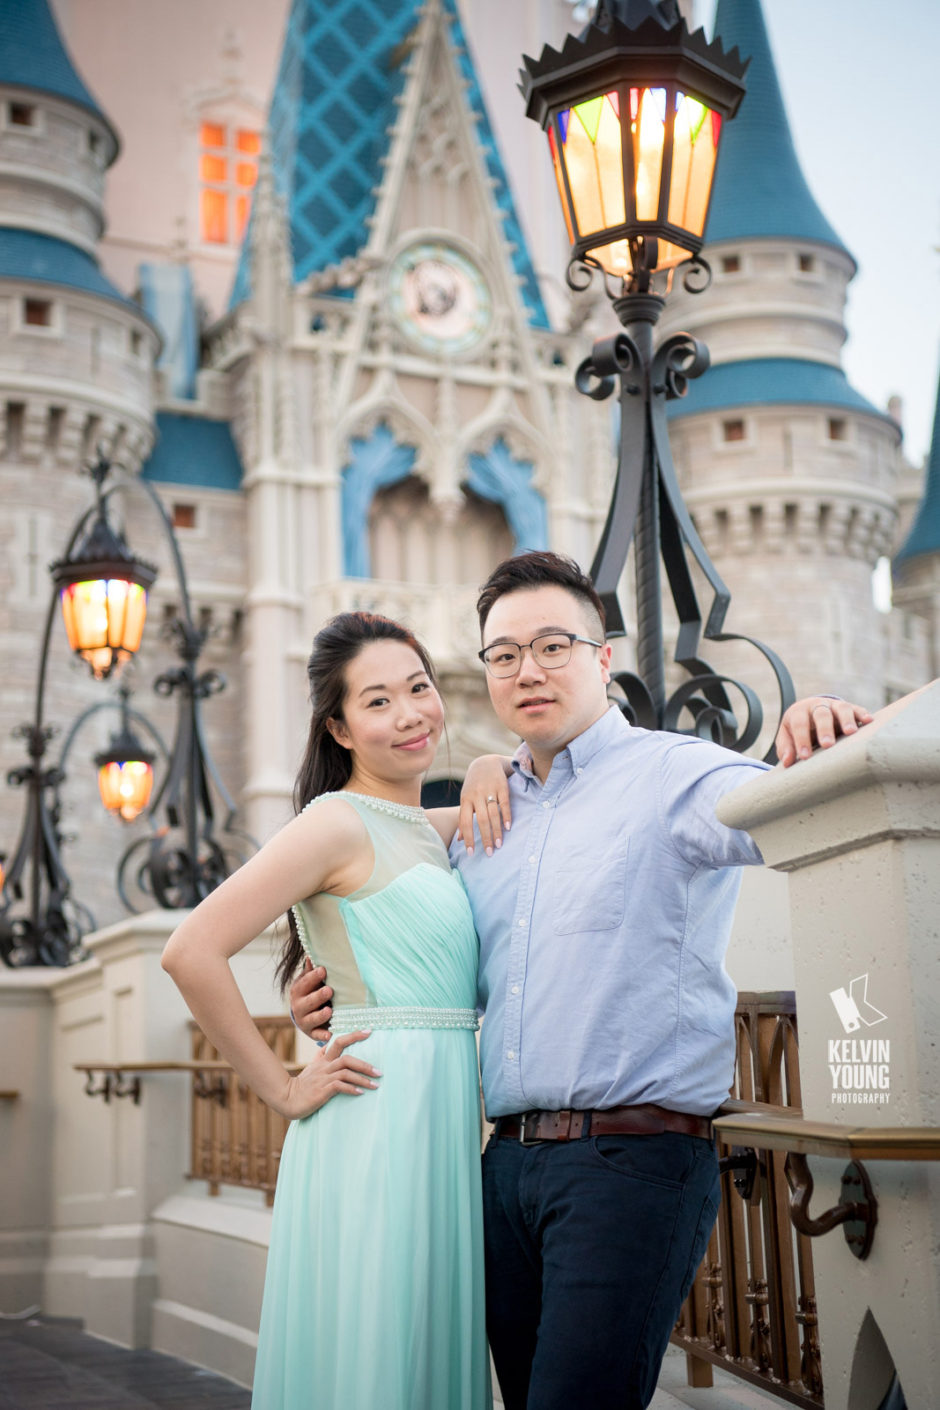 KYP16-Coco-Tony-Disney-World-Engagement-Photo-Session_018